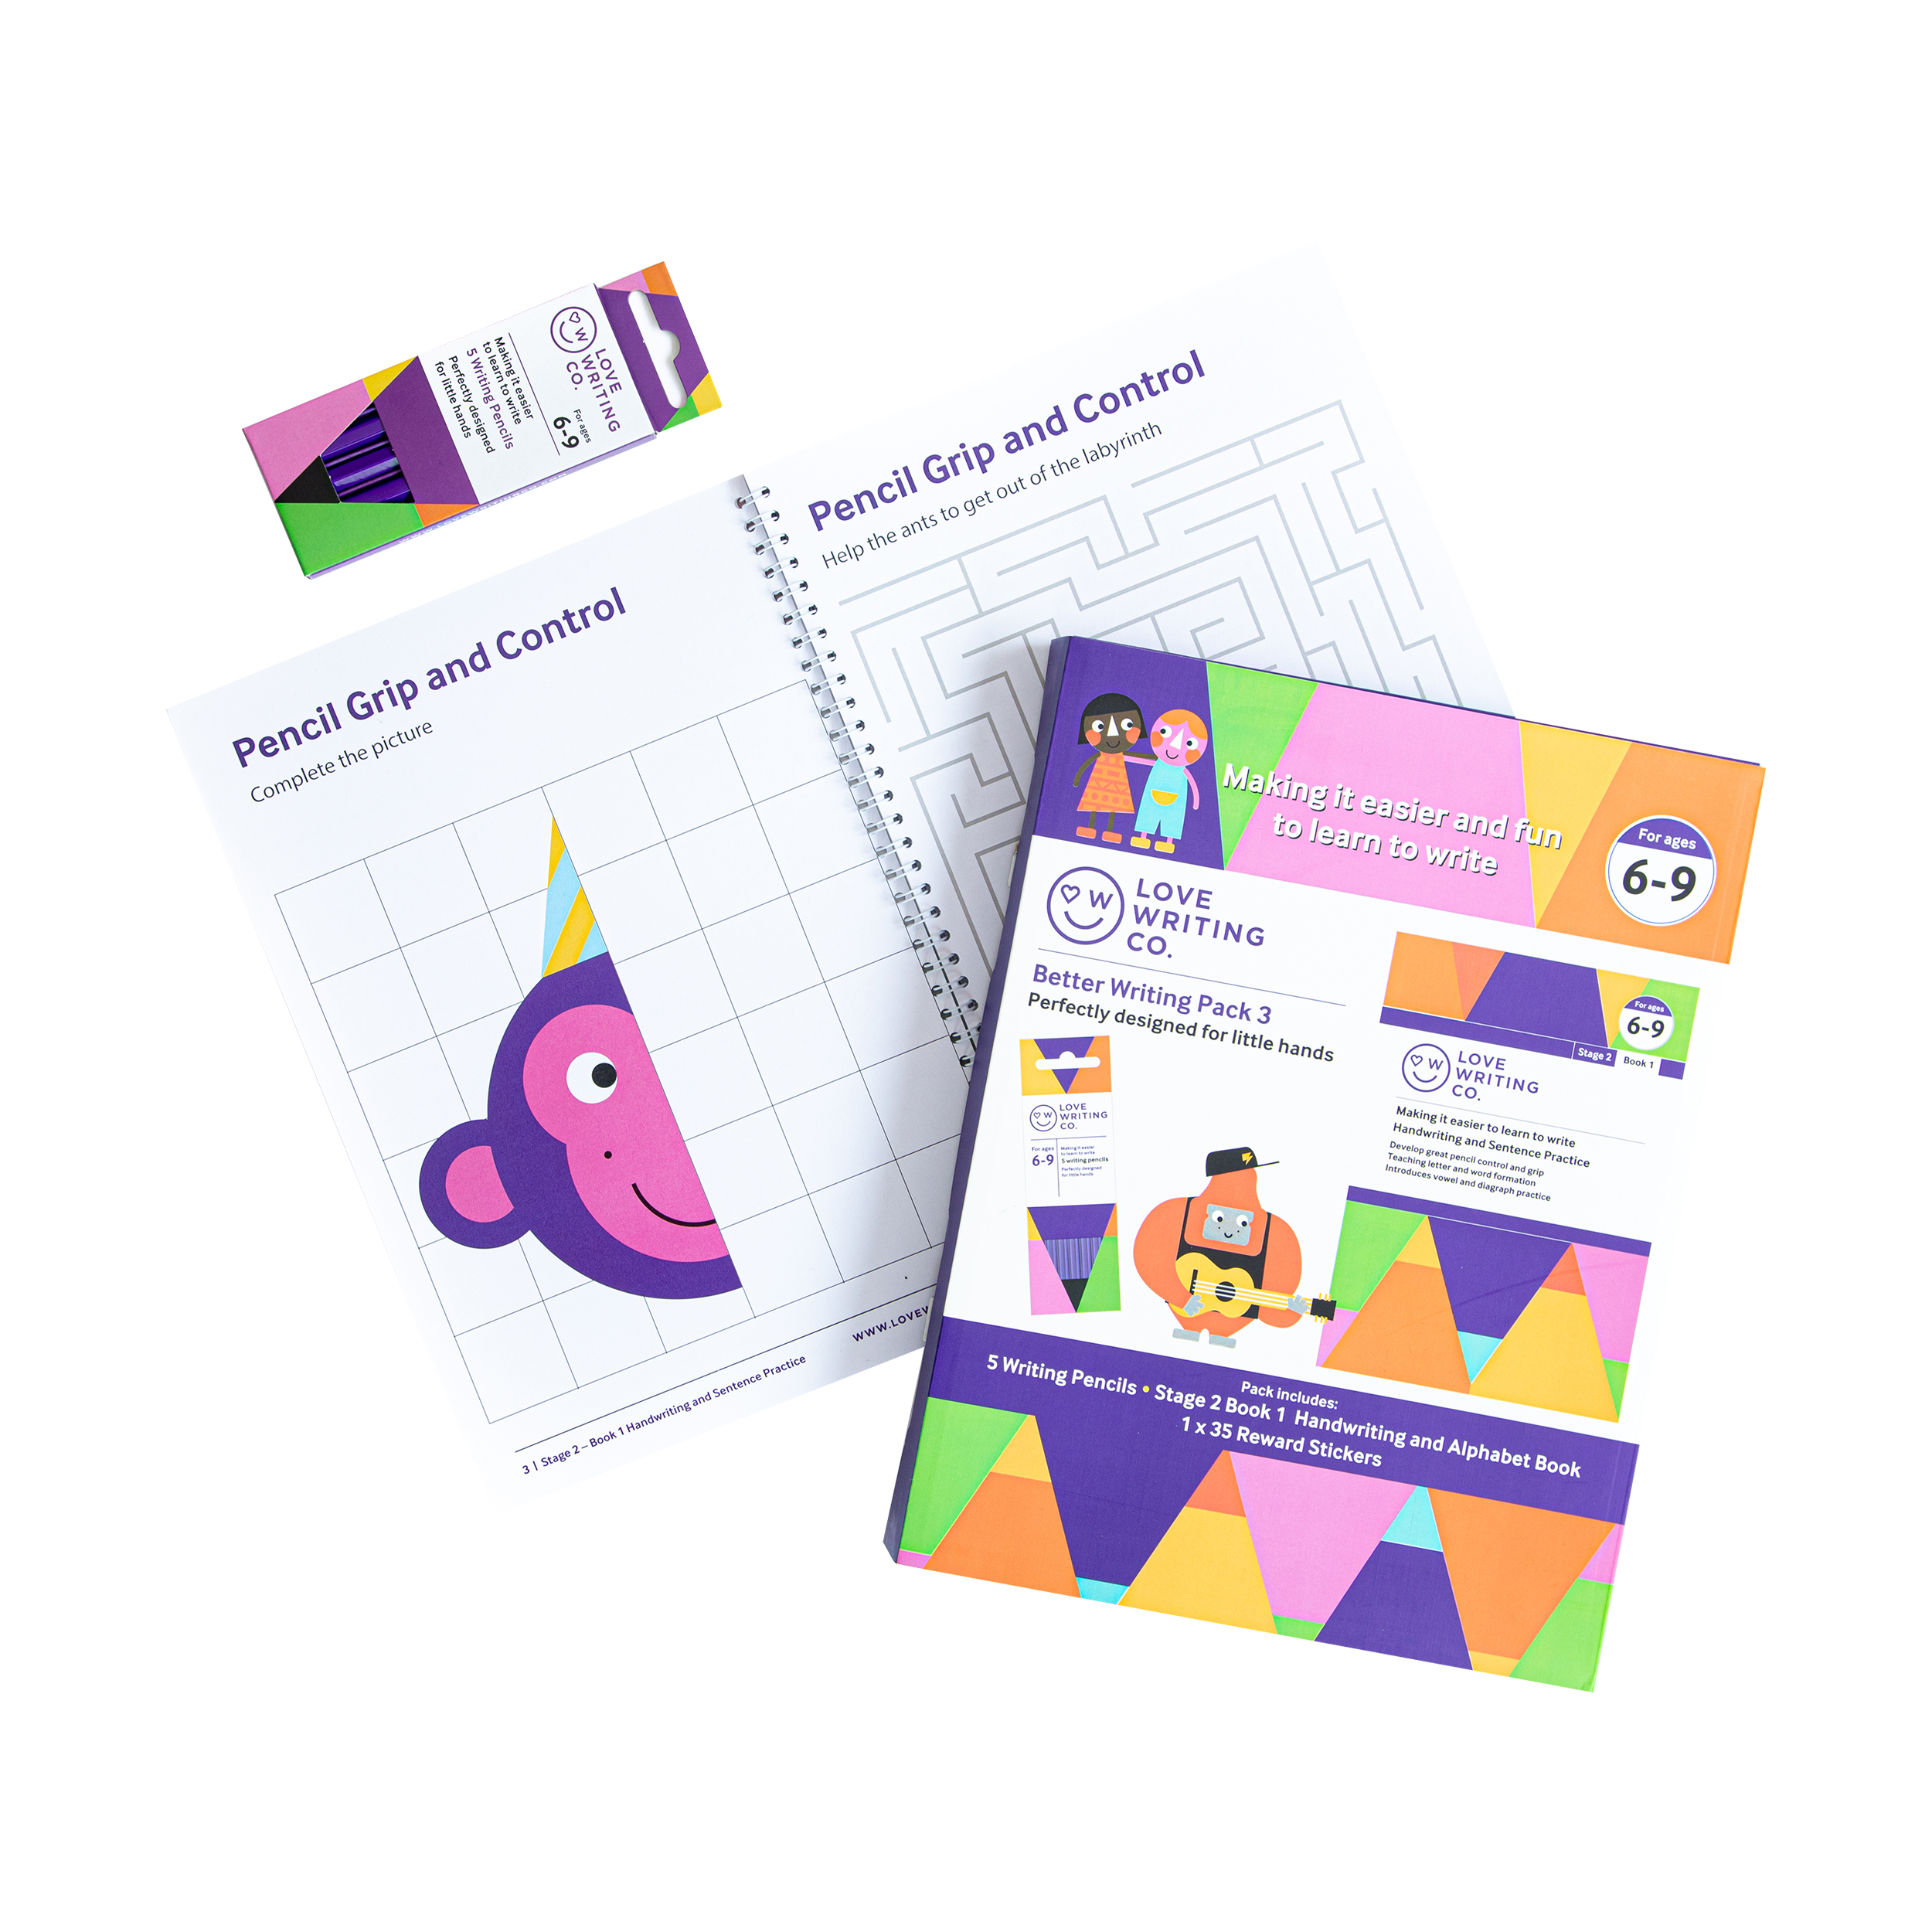 Win 2 New Washable Crayons & Writing Bundle Packs from The Love Writing Co